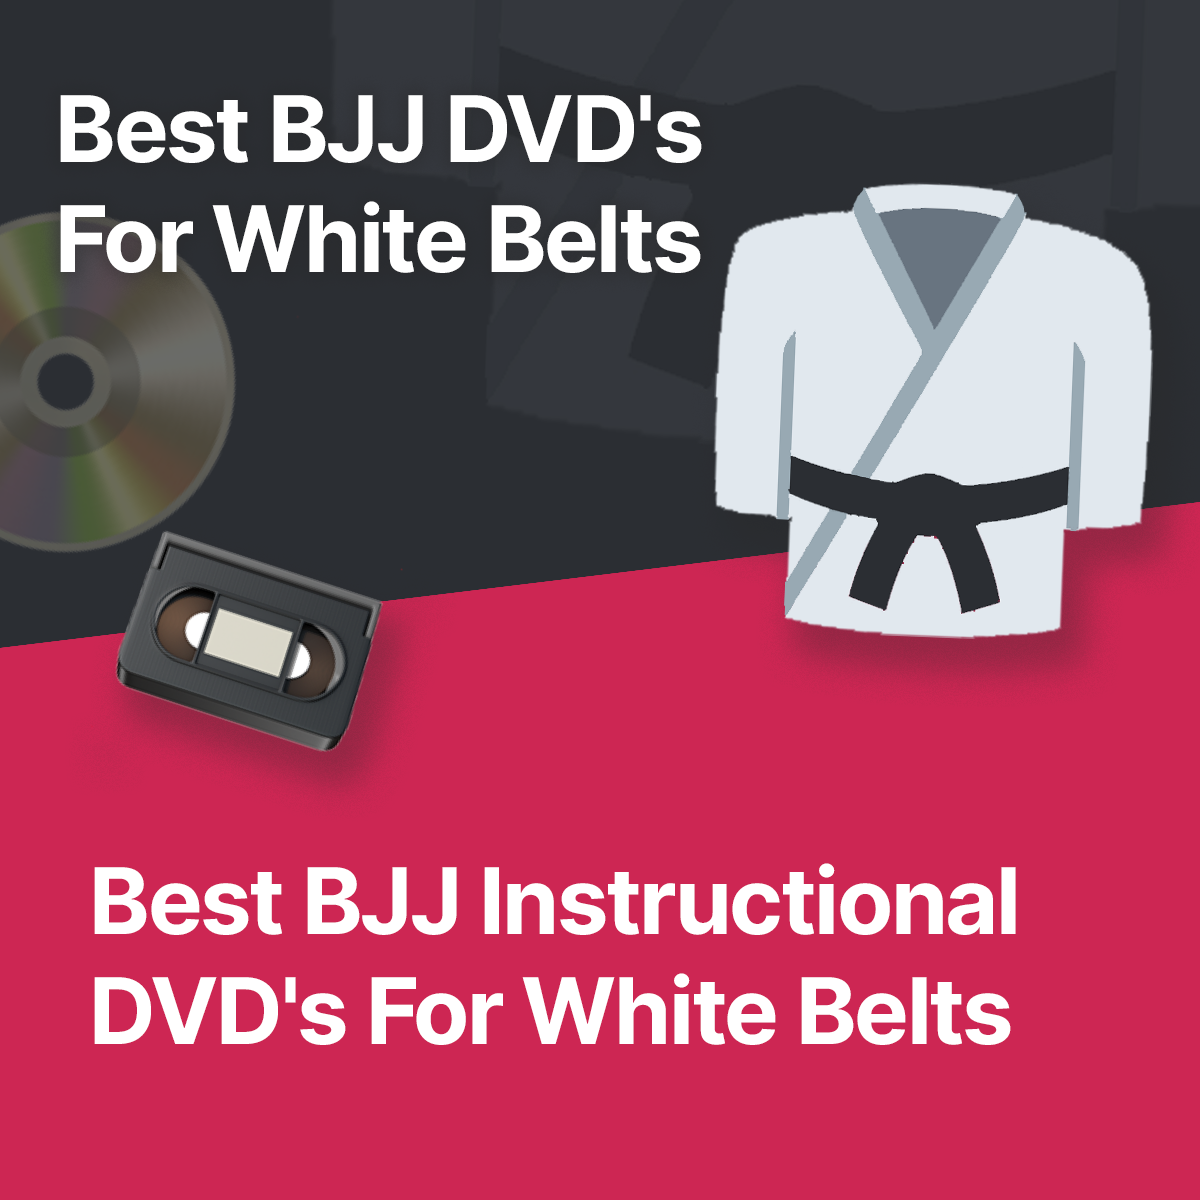 Best BJJ DVD's for white belts